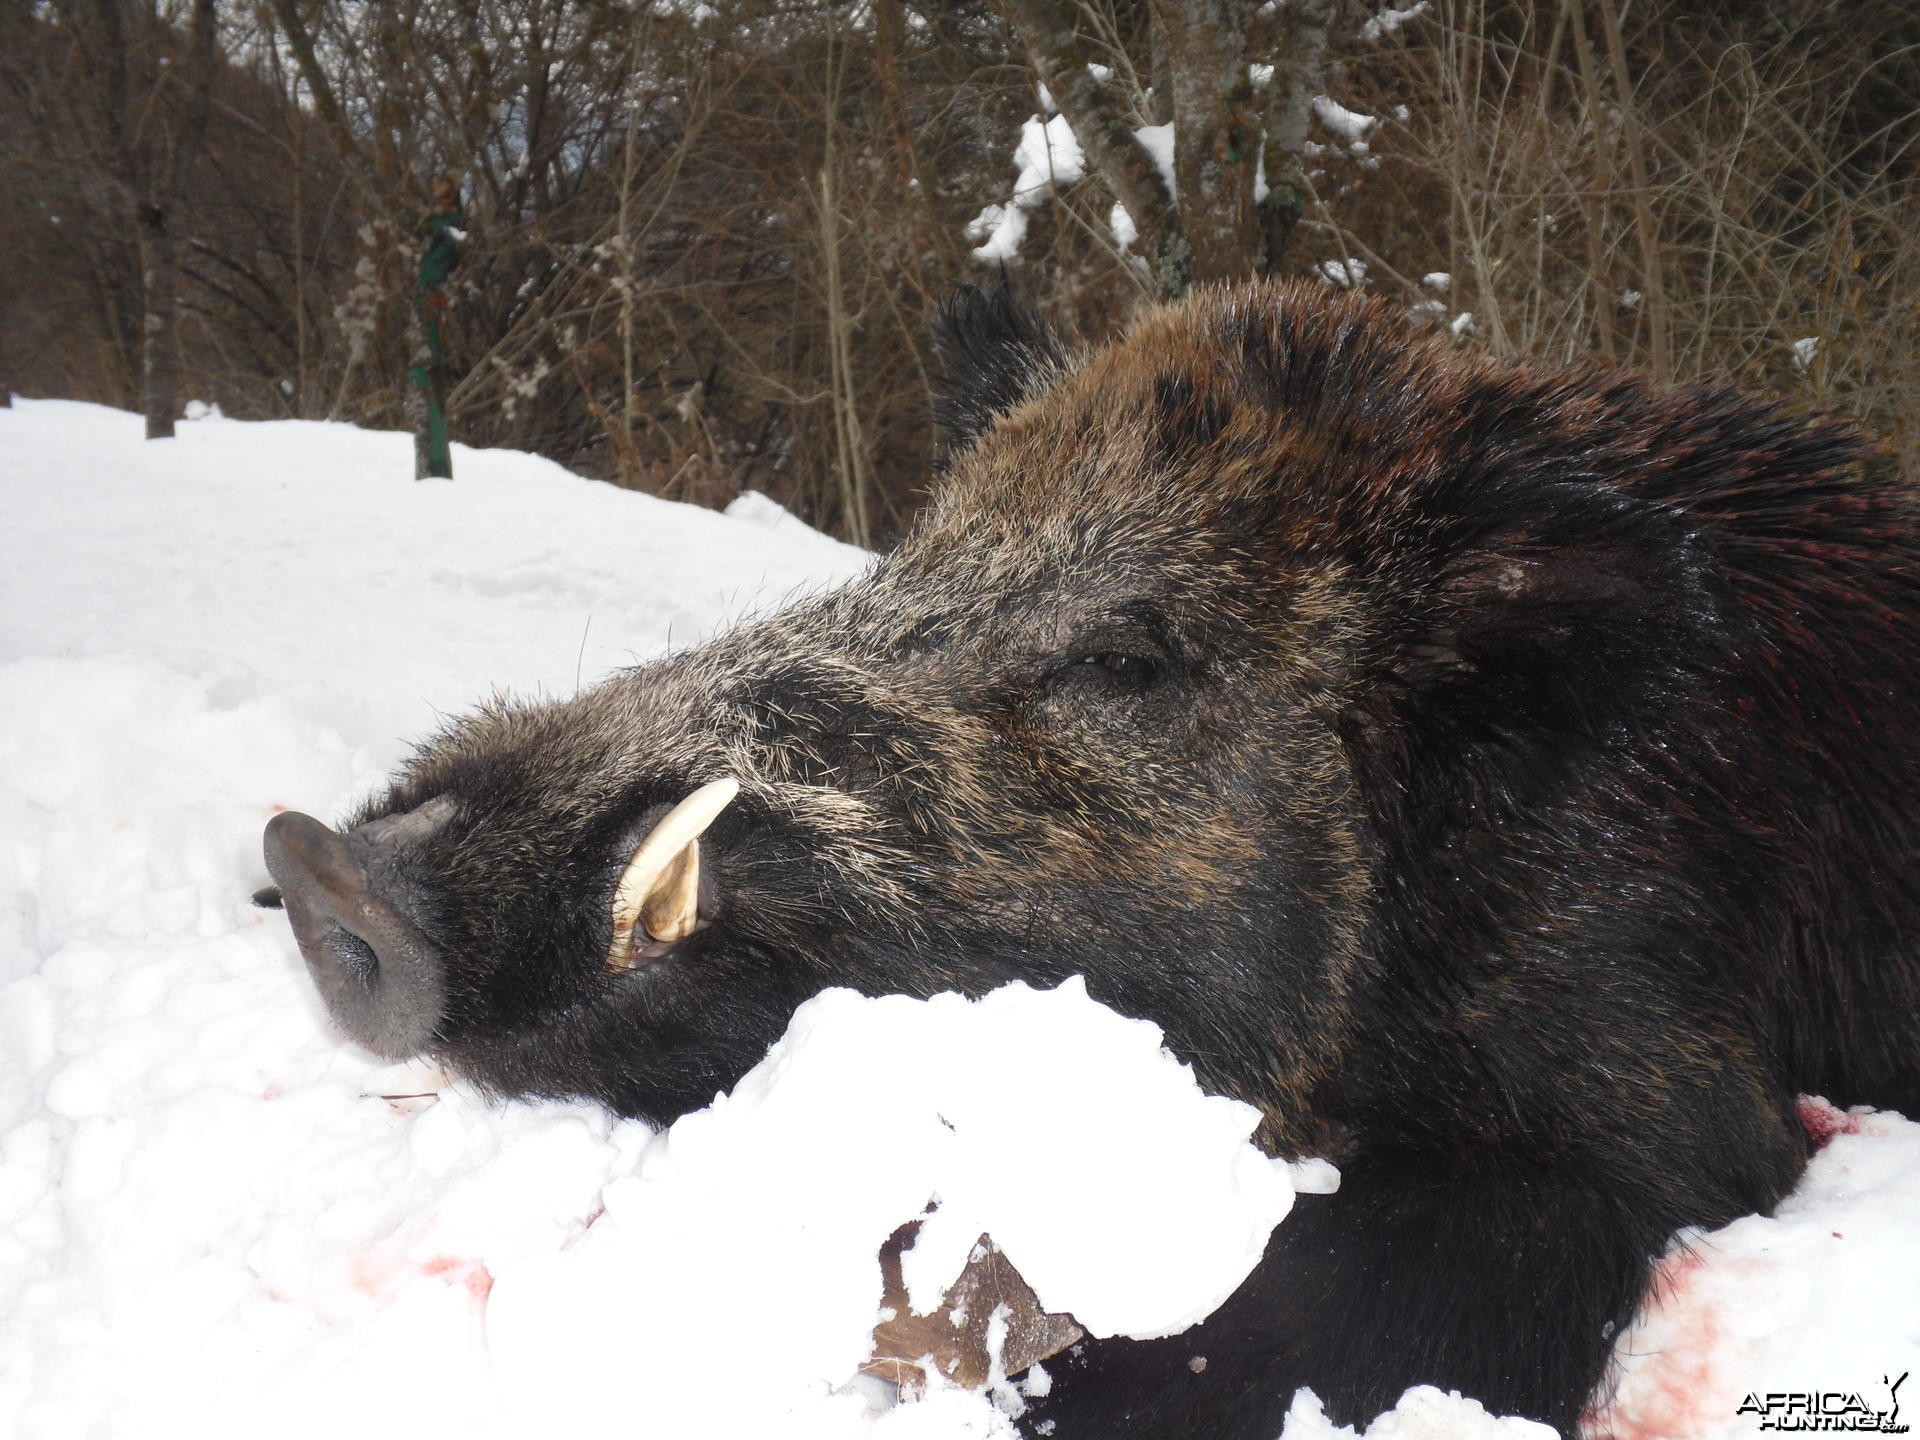 Boar hunt in Bulgaria